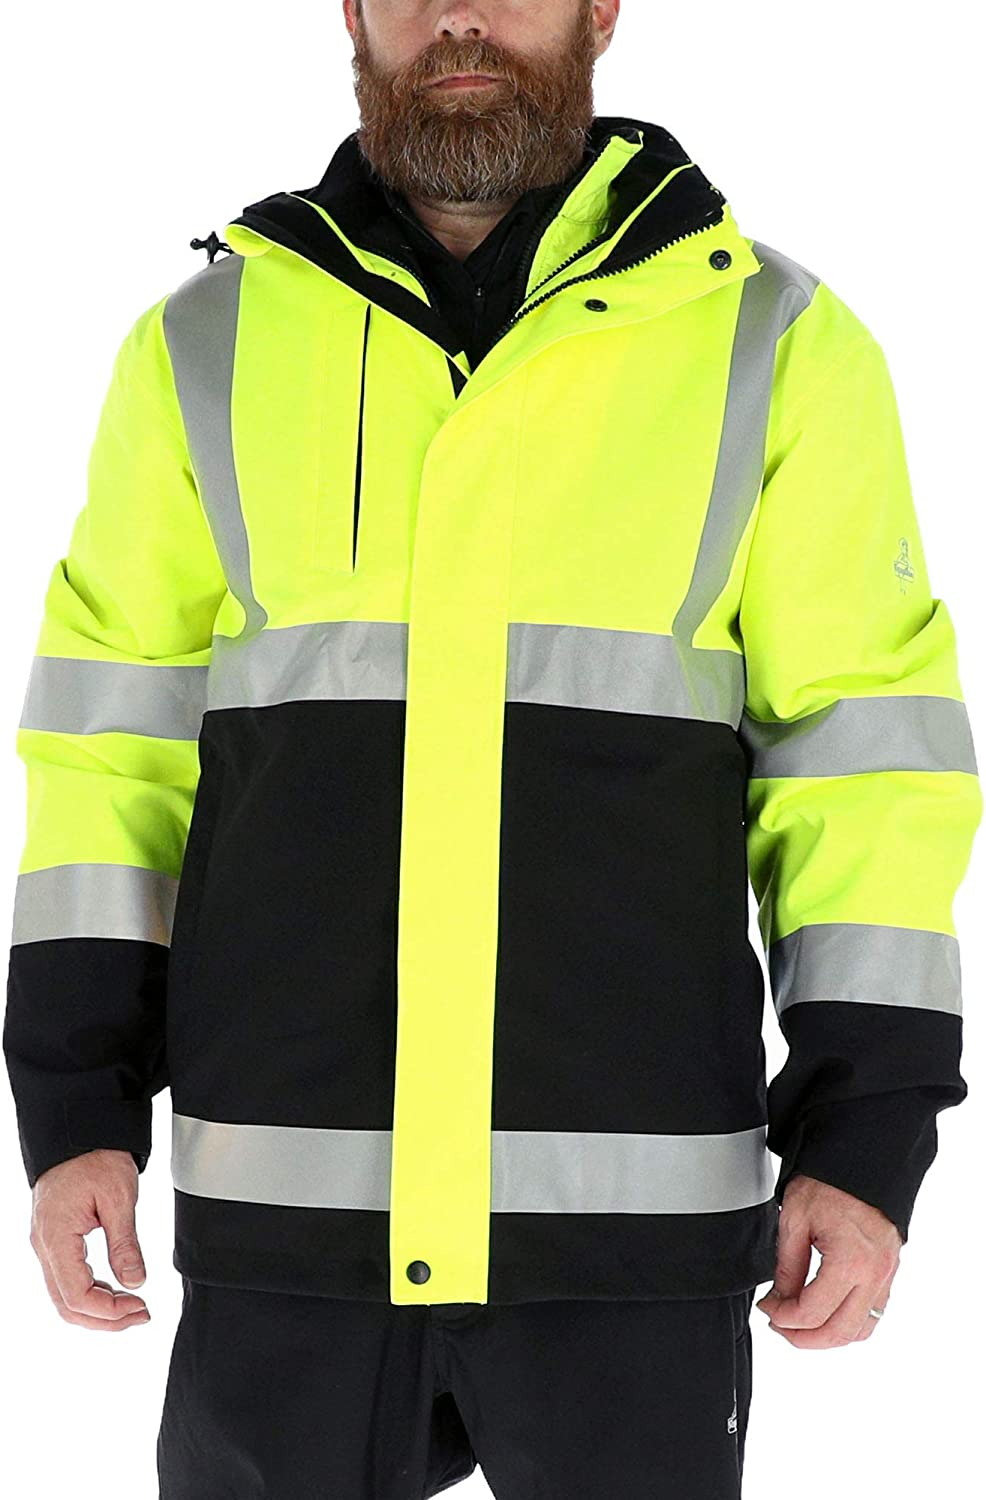 RefrigiWear Hivis 3-in-1 Insulated Rainwear Systems Jacket - ANSI Class 2 High Visibility with Reflective Tape